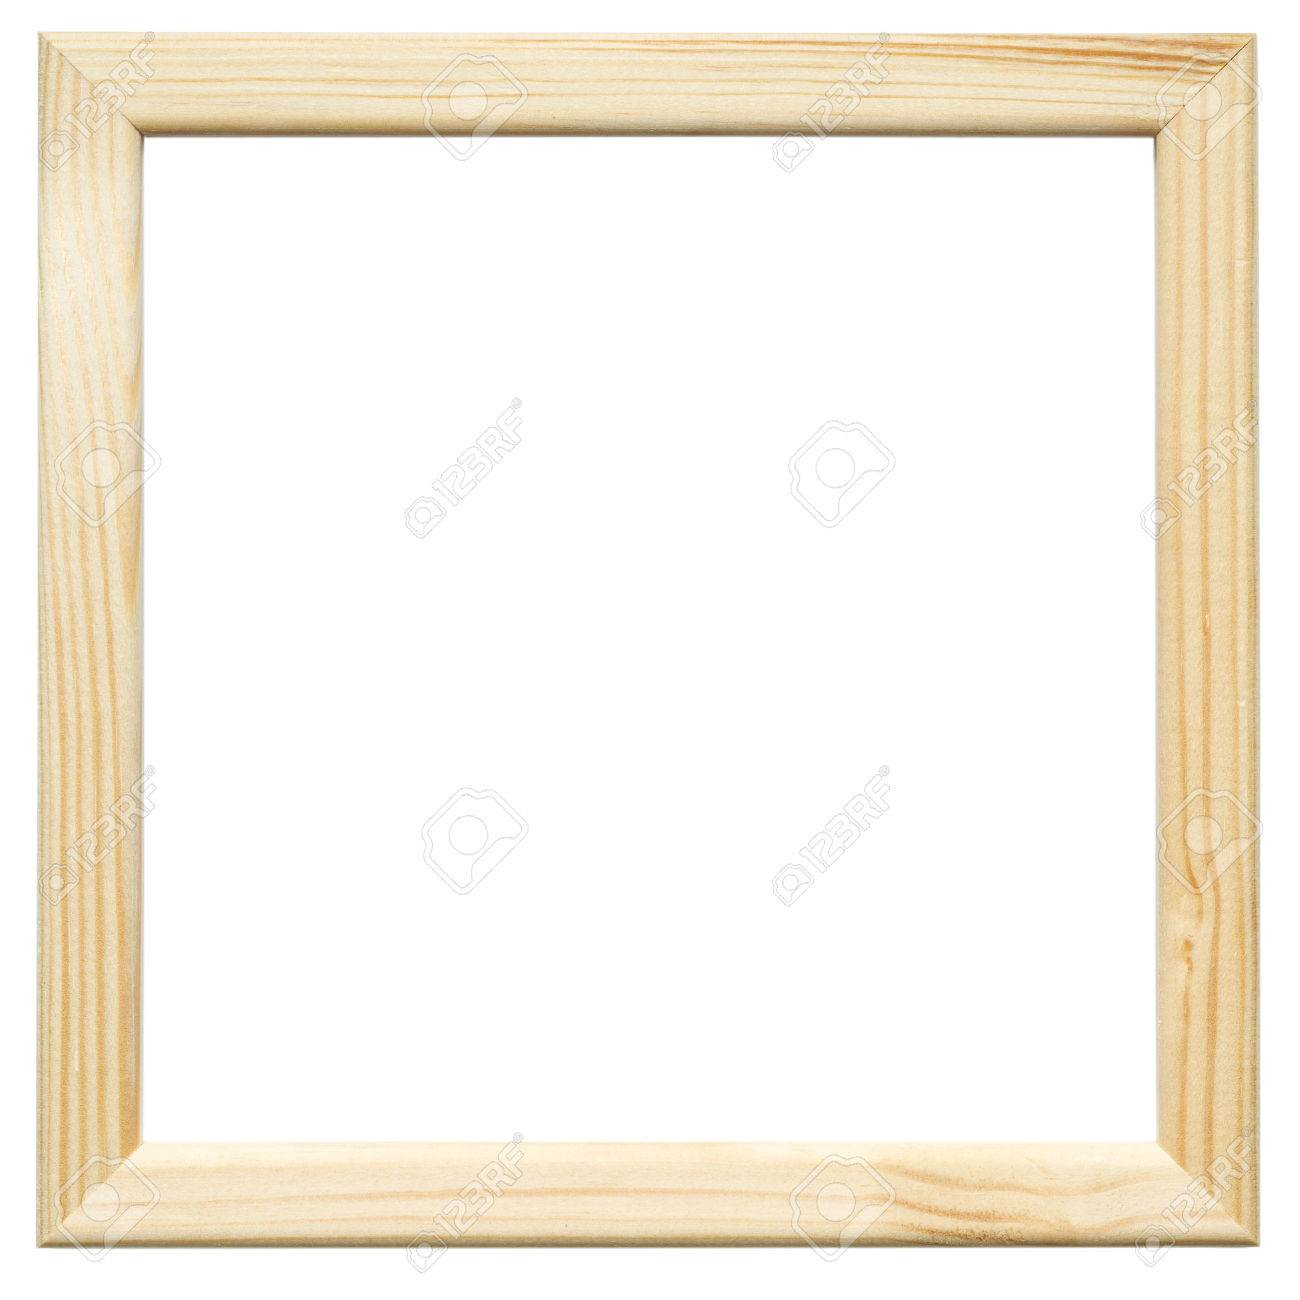 Light Square Wooden Picture Frame On The White Background Stock ...